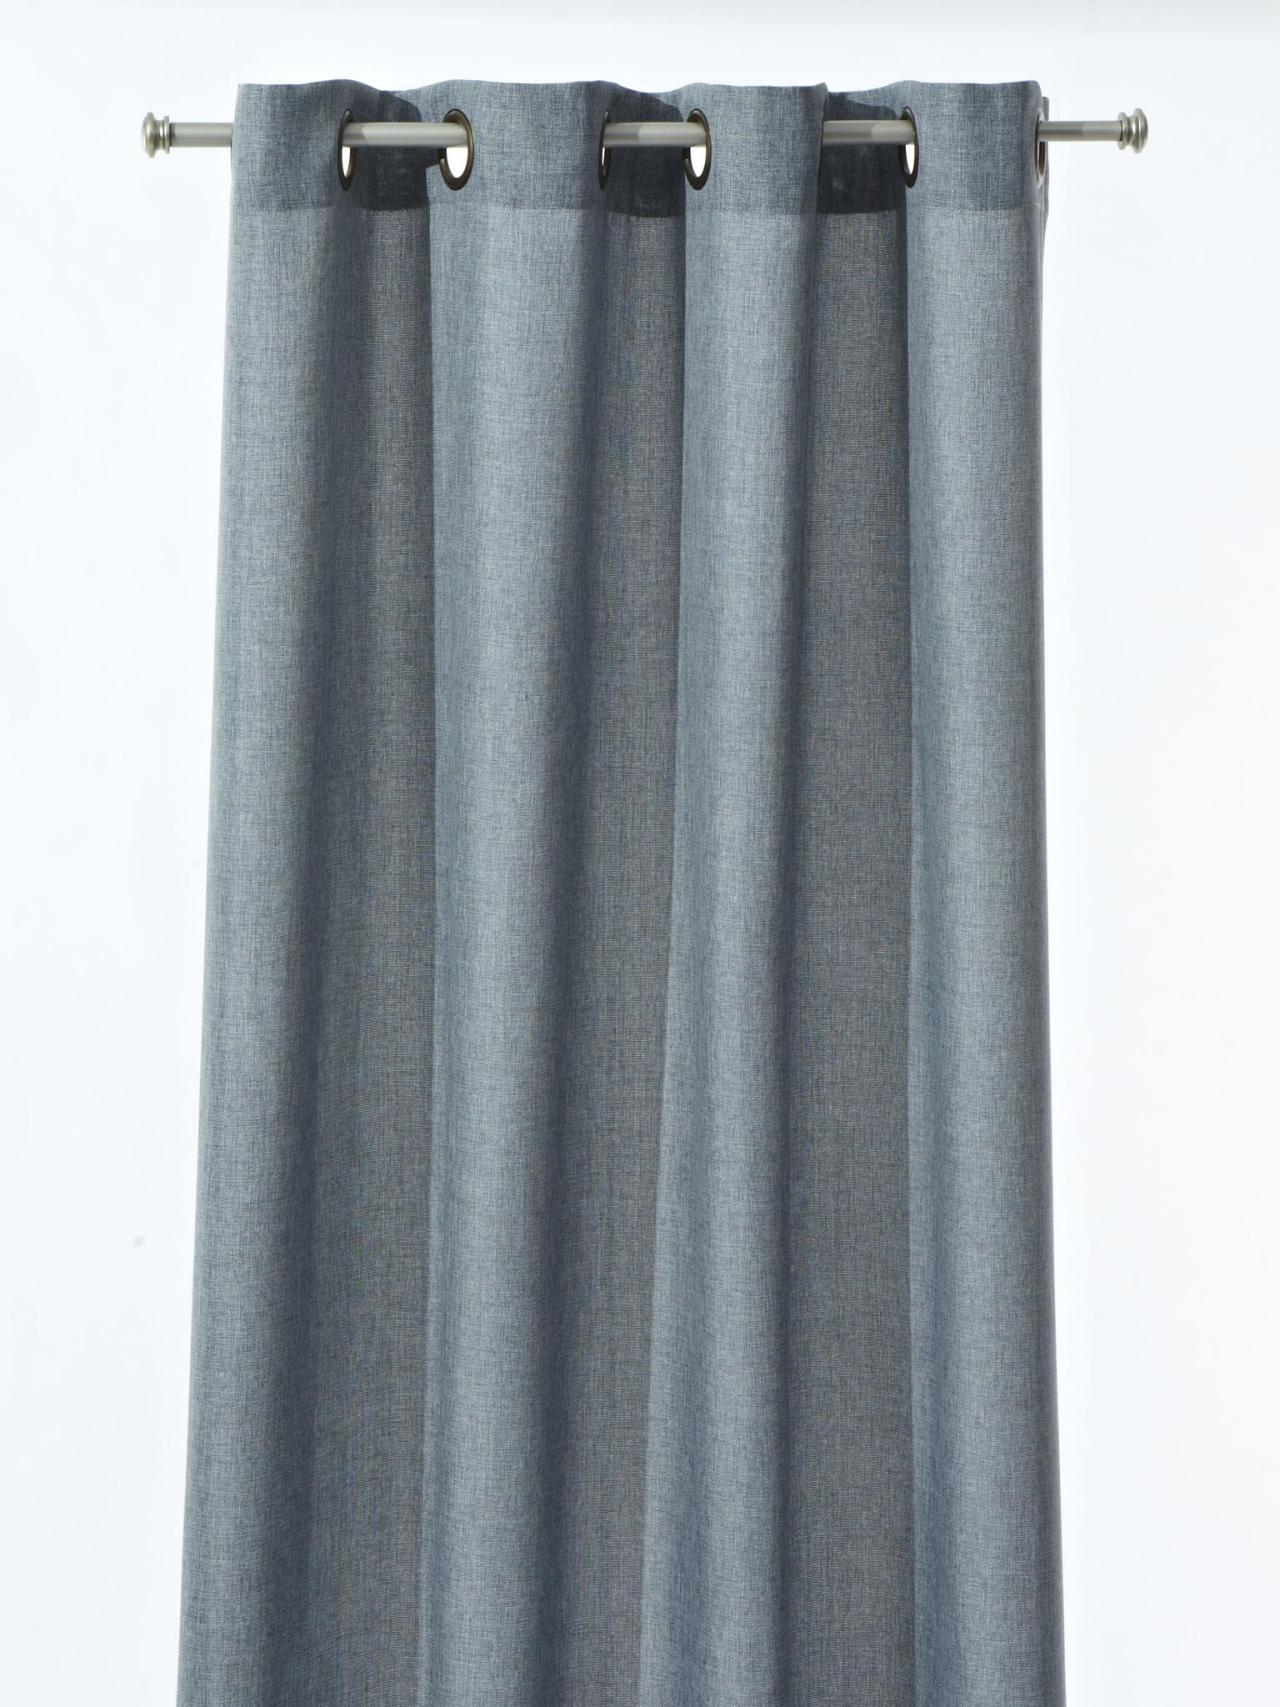 neutral blue jaclyn smith today 52 x 84 hopsack panel in slate blue $ ...